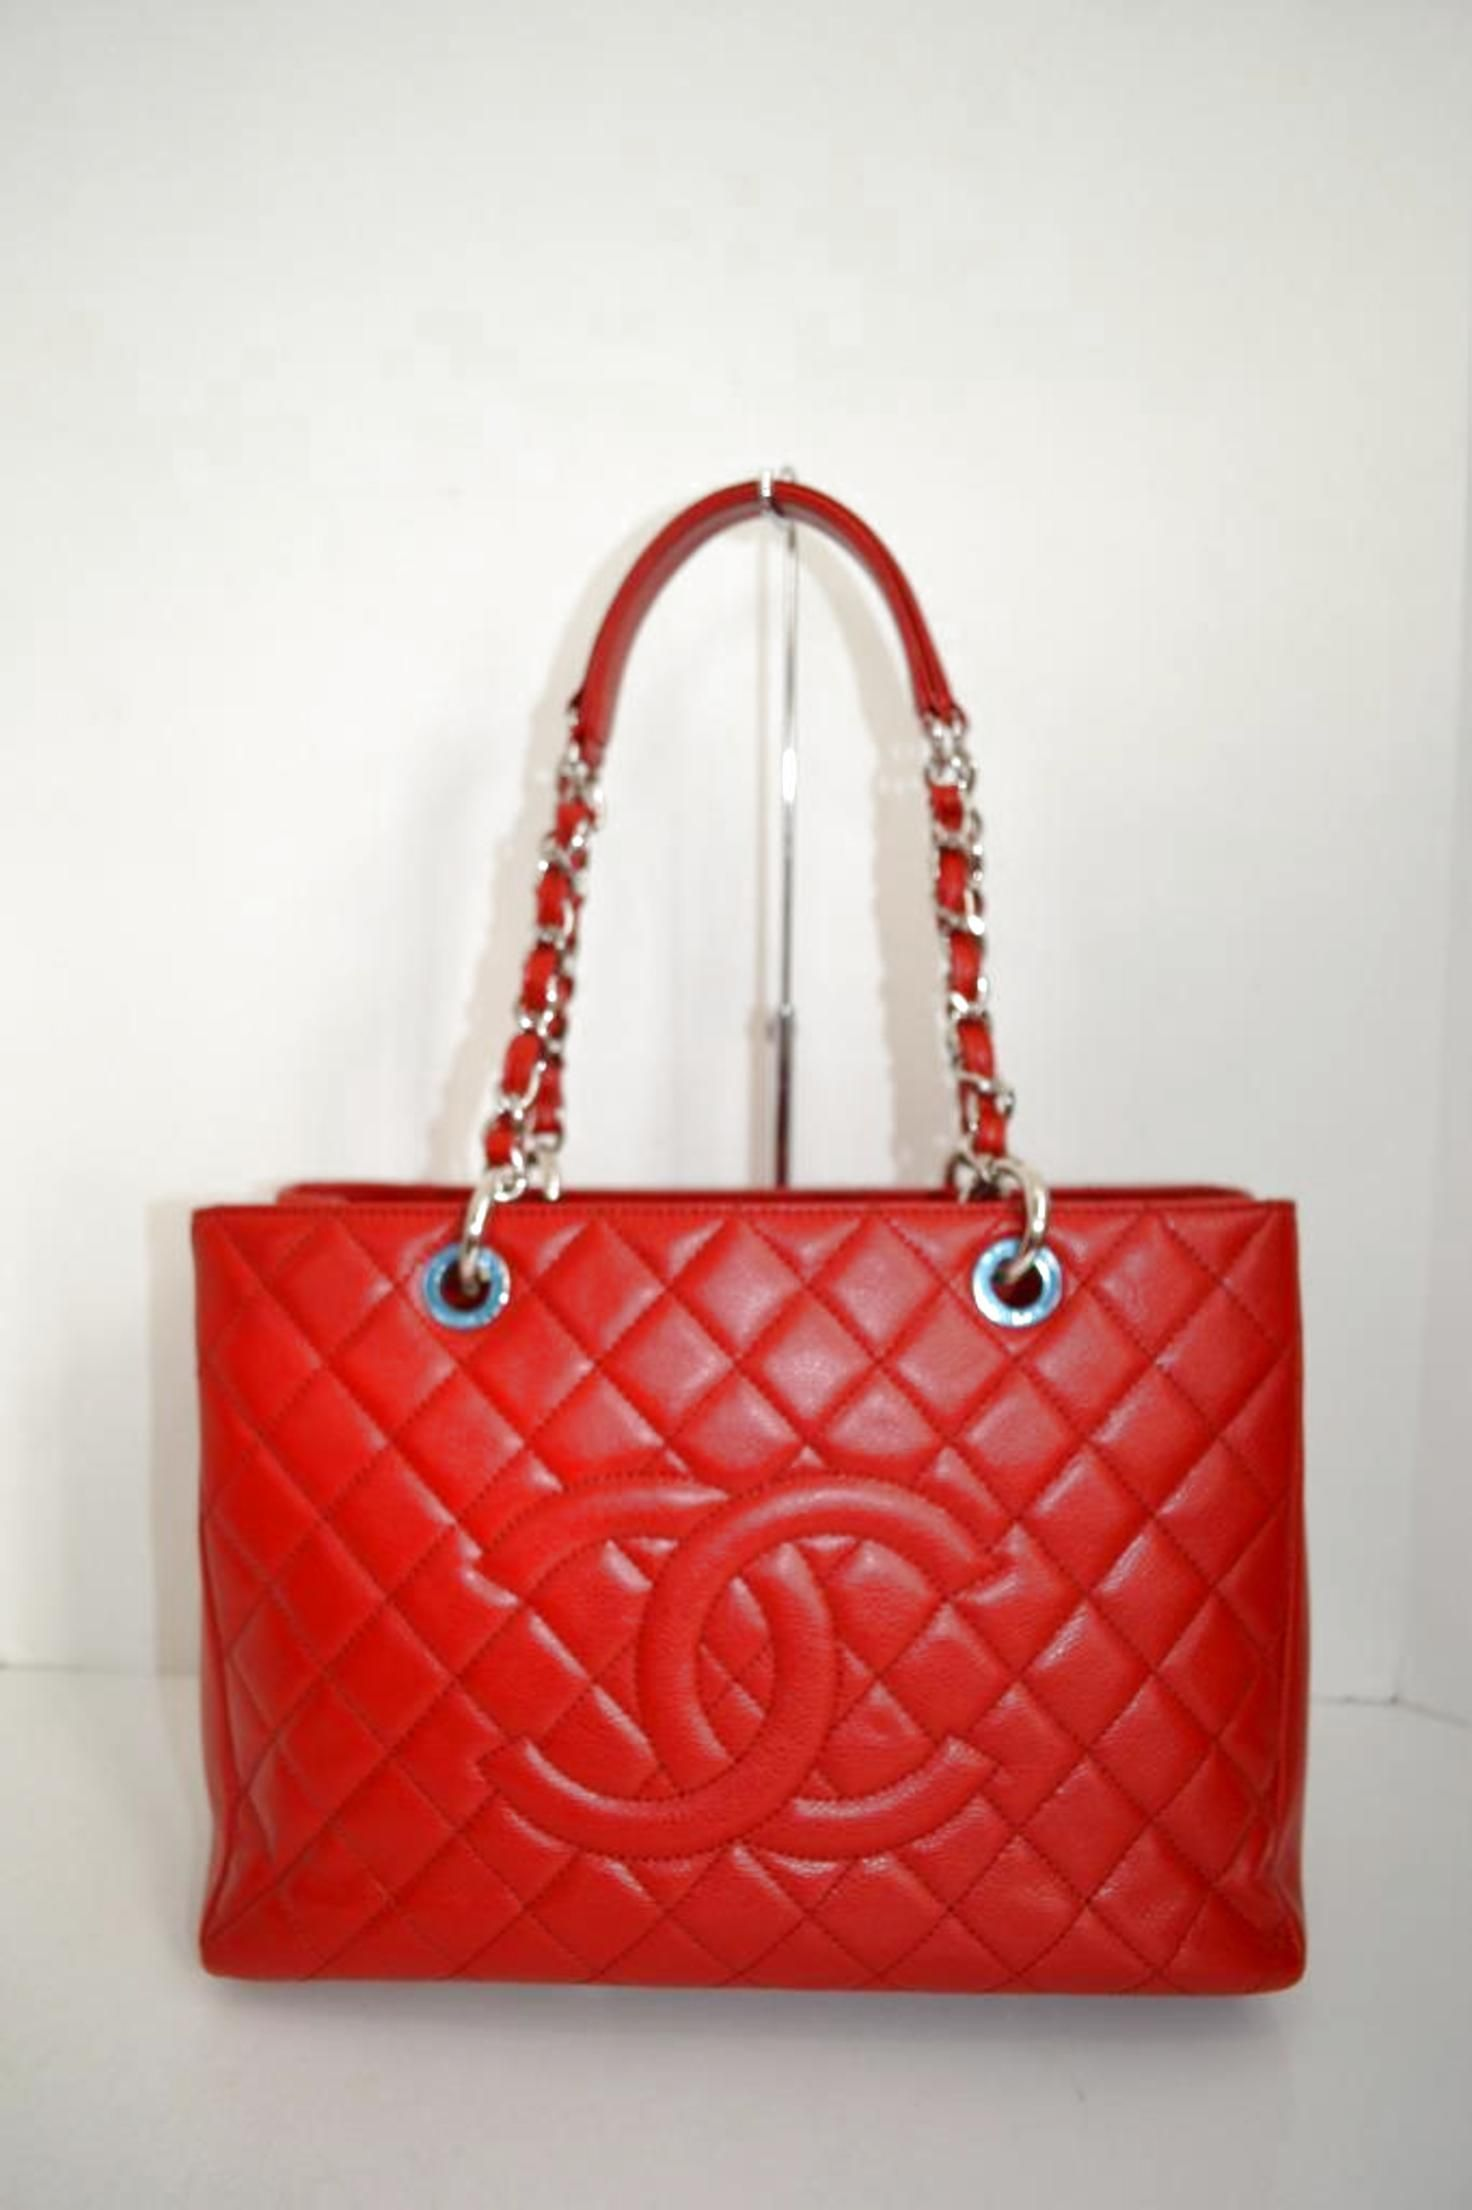 c1cadee866a NWOB Chanel Red Quilted Caviar Leather